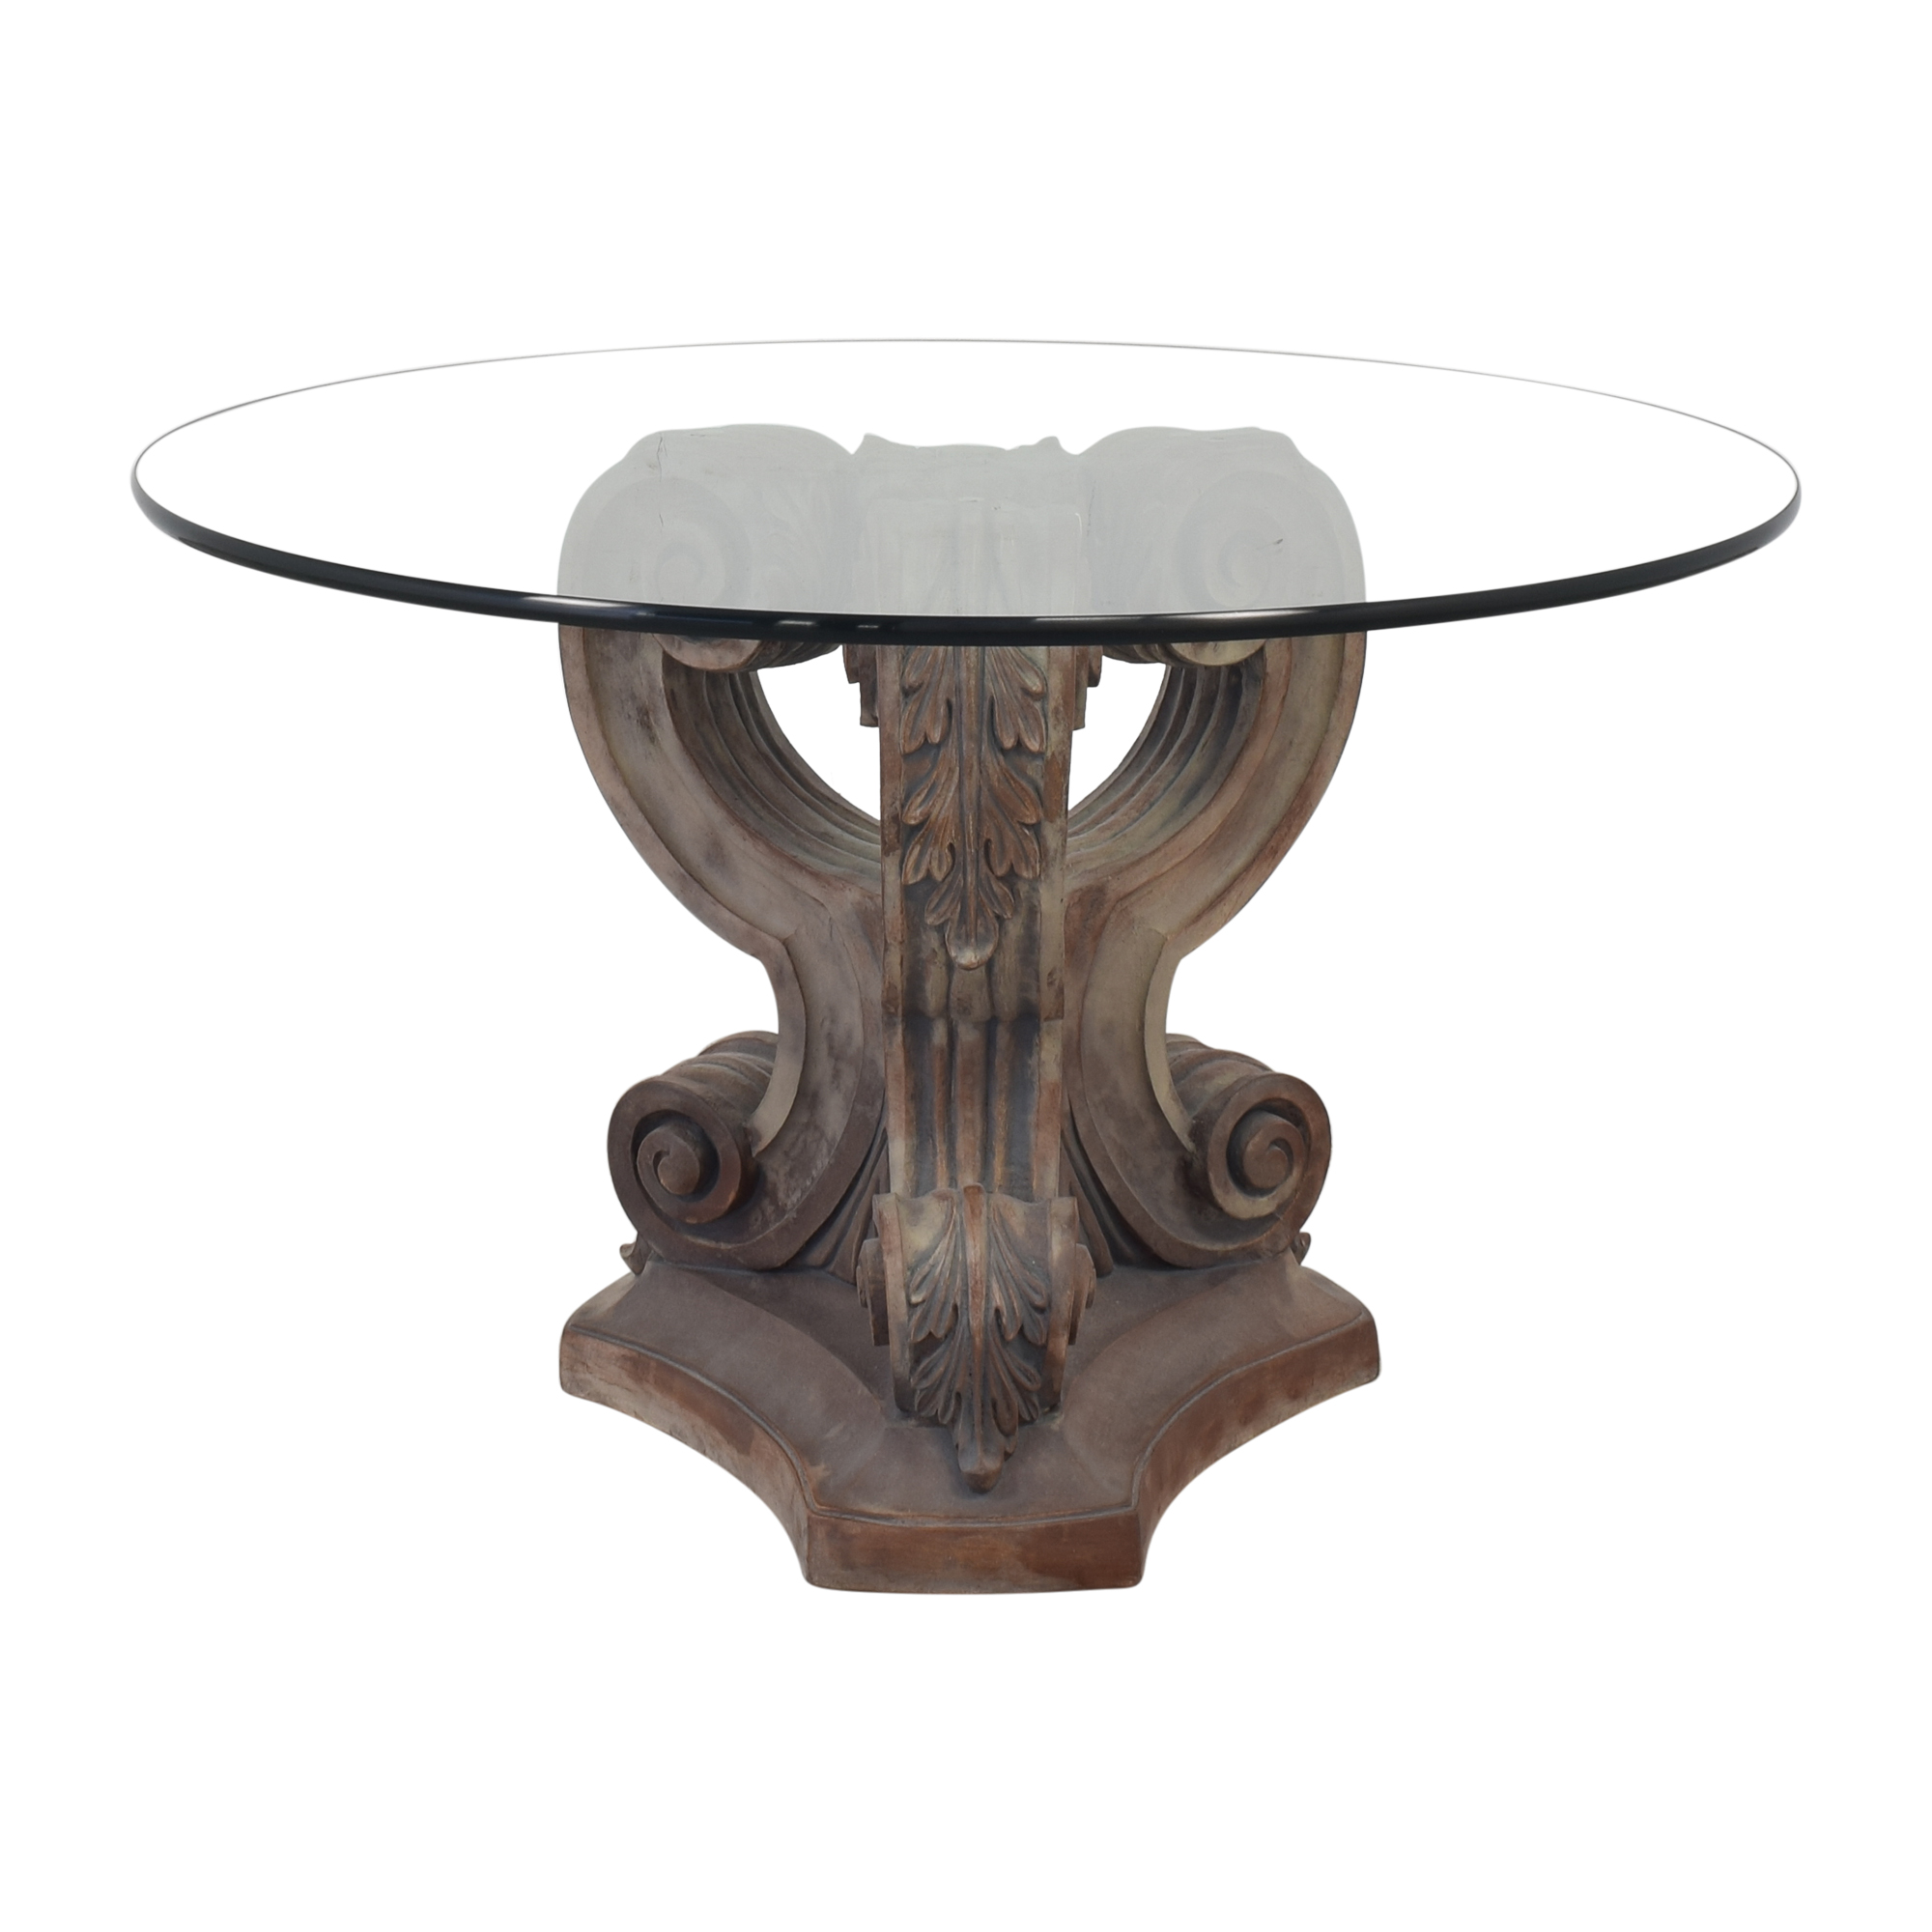 Ornate Base Dining Table for sale